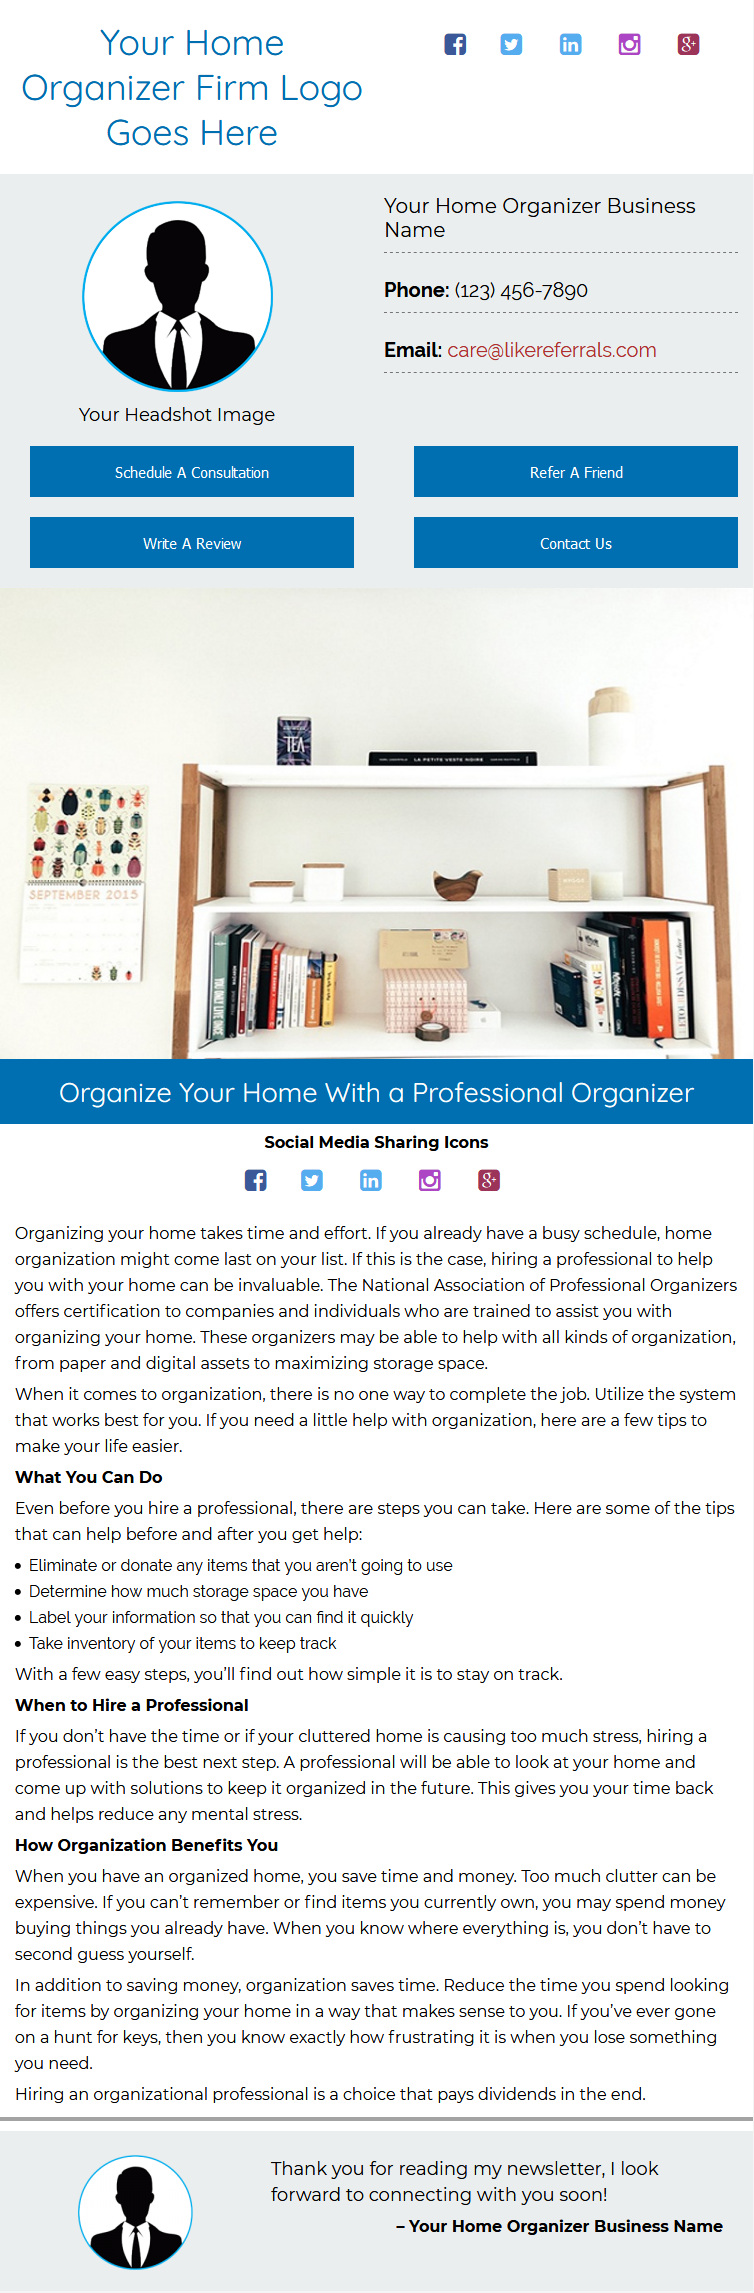 Email Newsletter Marketing Services For Home Organizer